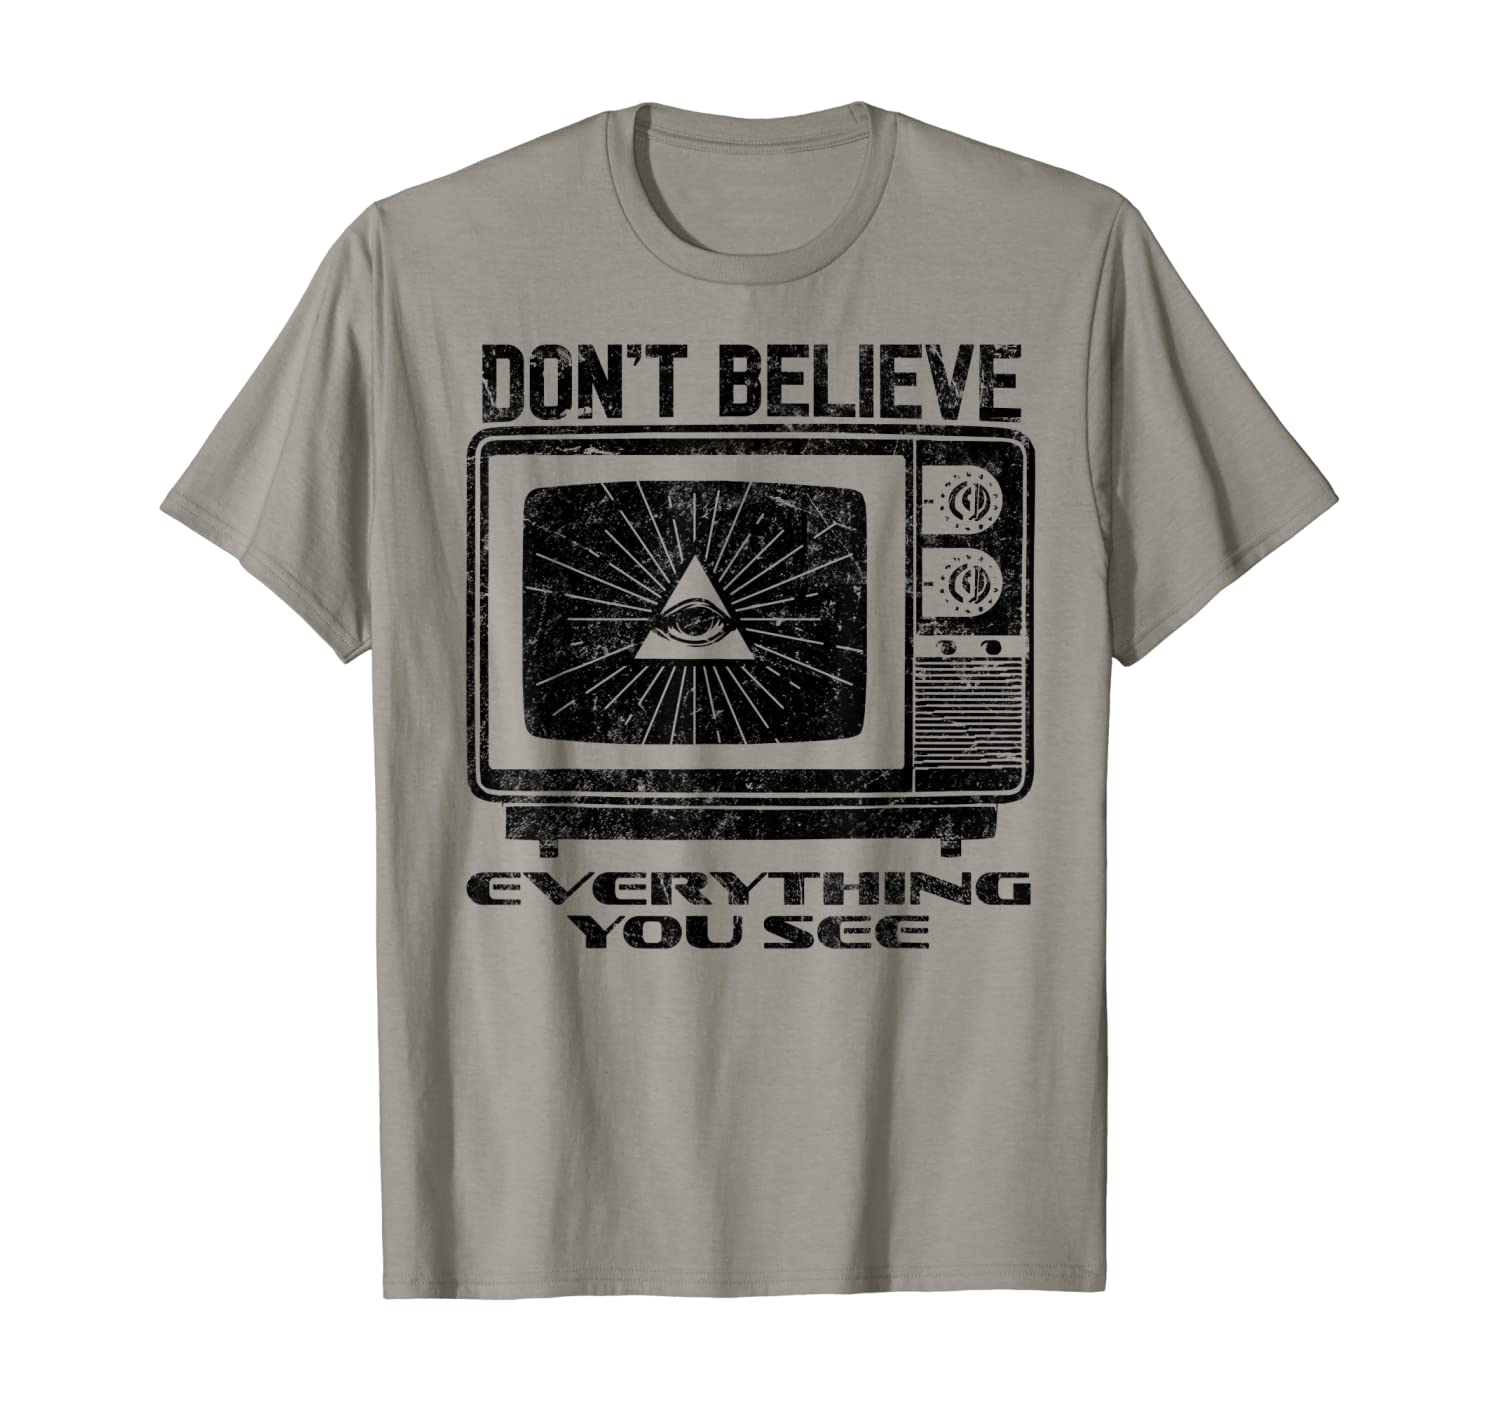 Shane Dawson Vintage Don't Believe Everything You See Shirt